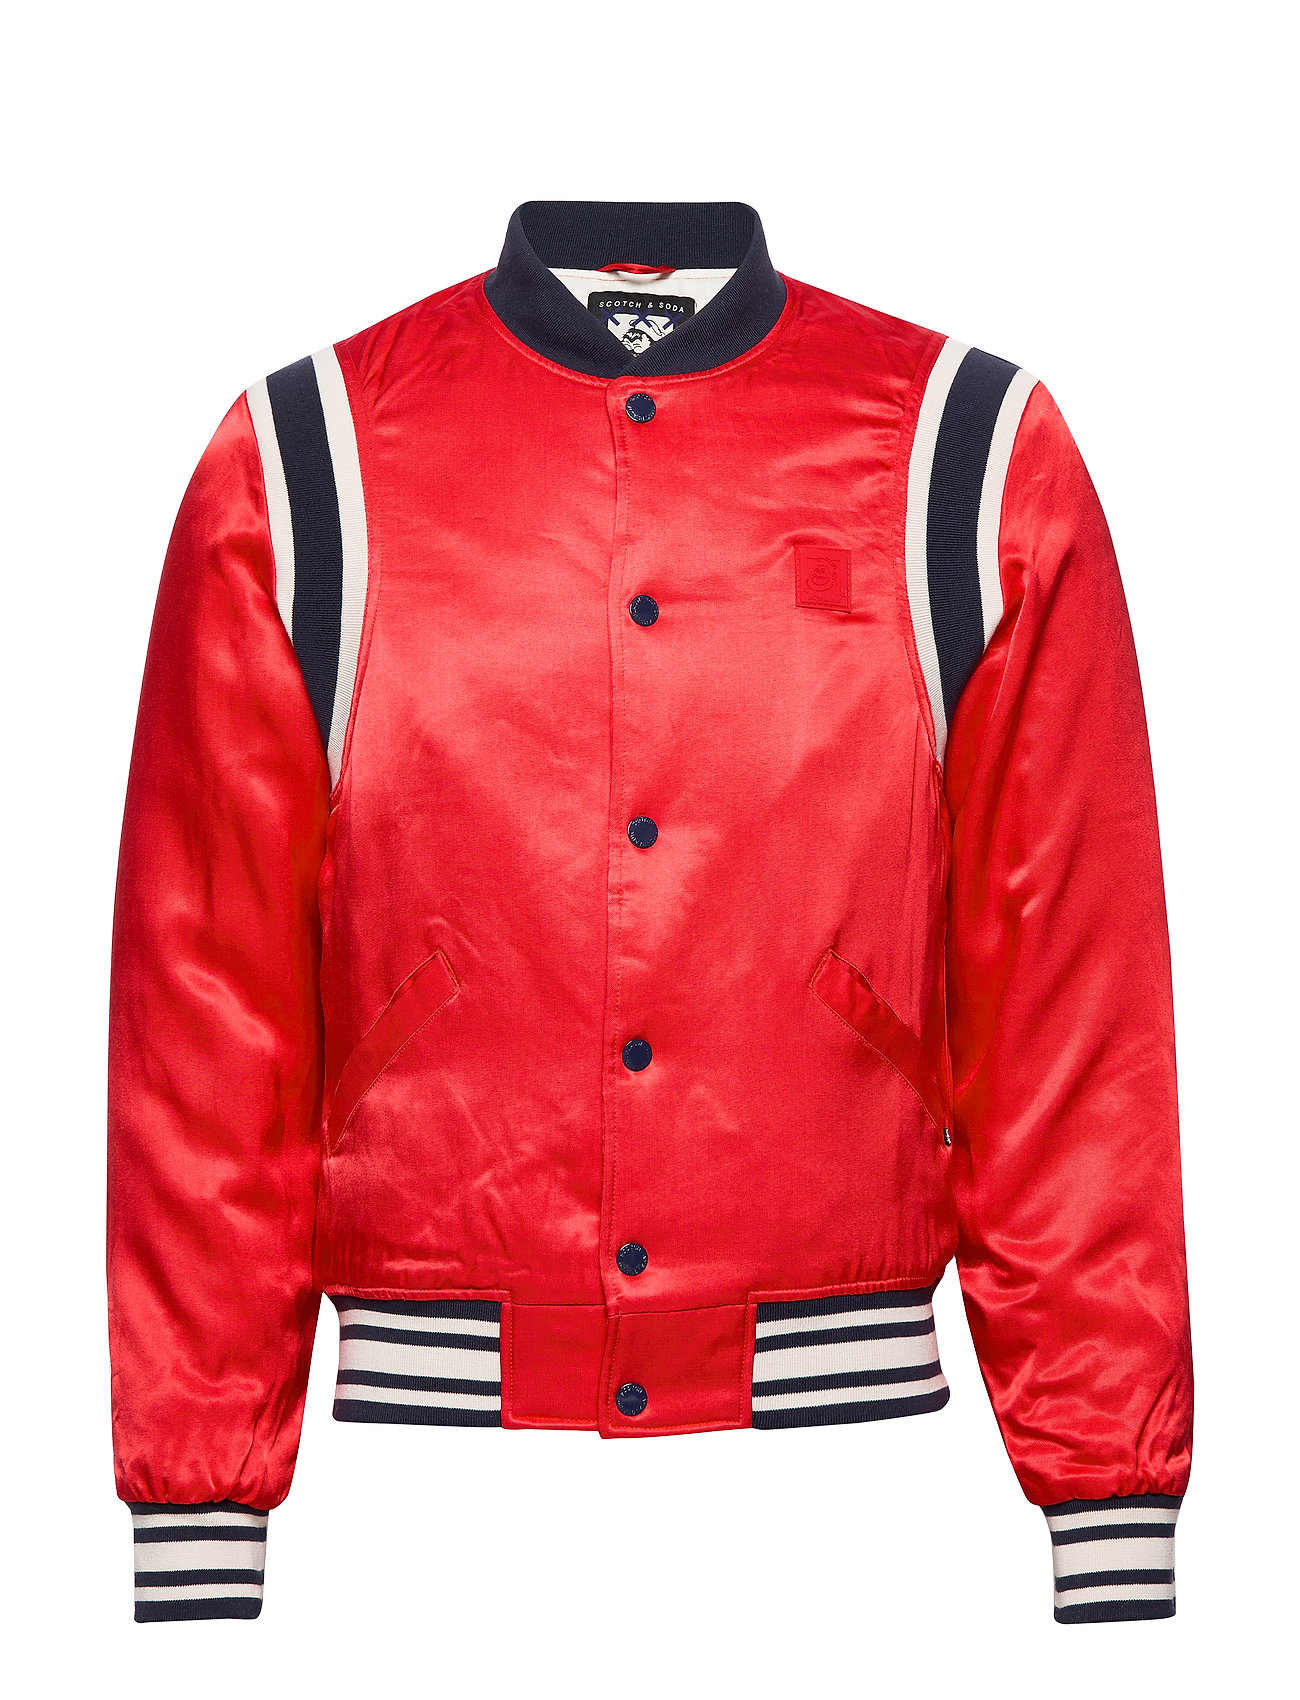 Scotch & Soda Brutus Ams Blauw colab bomber jacket - LIFEGUARD RED